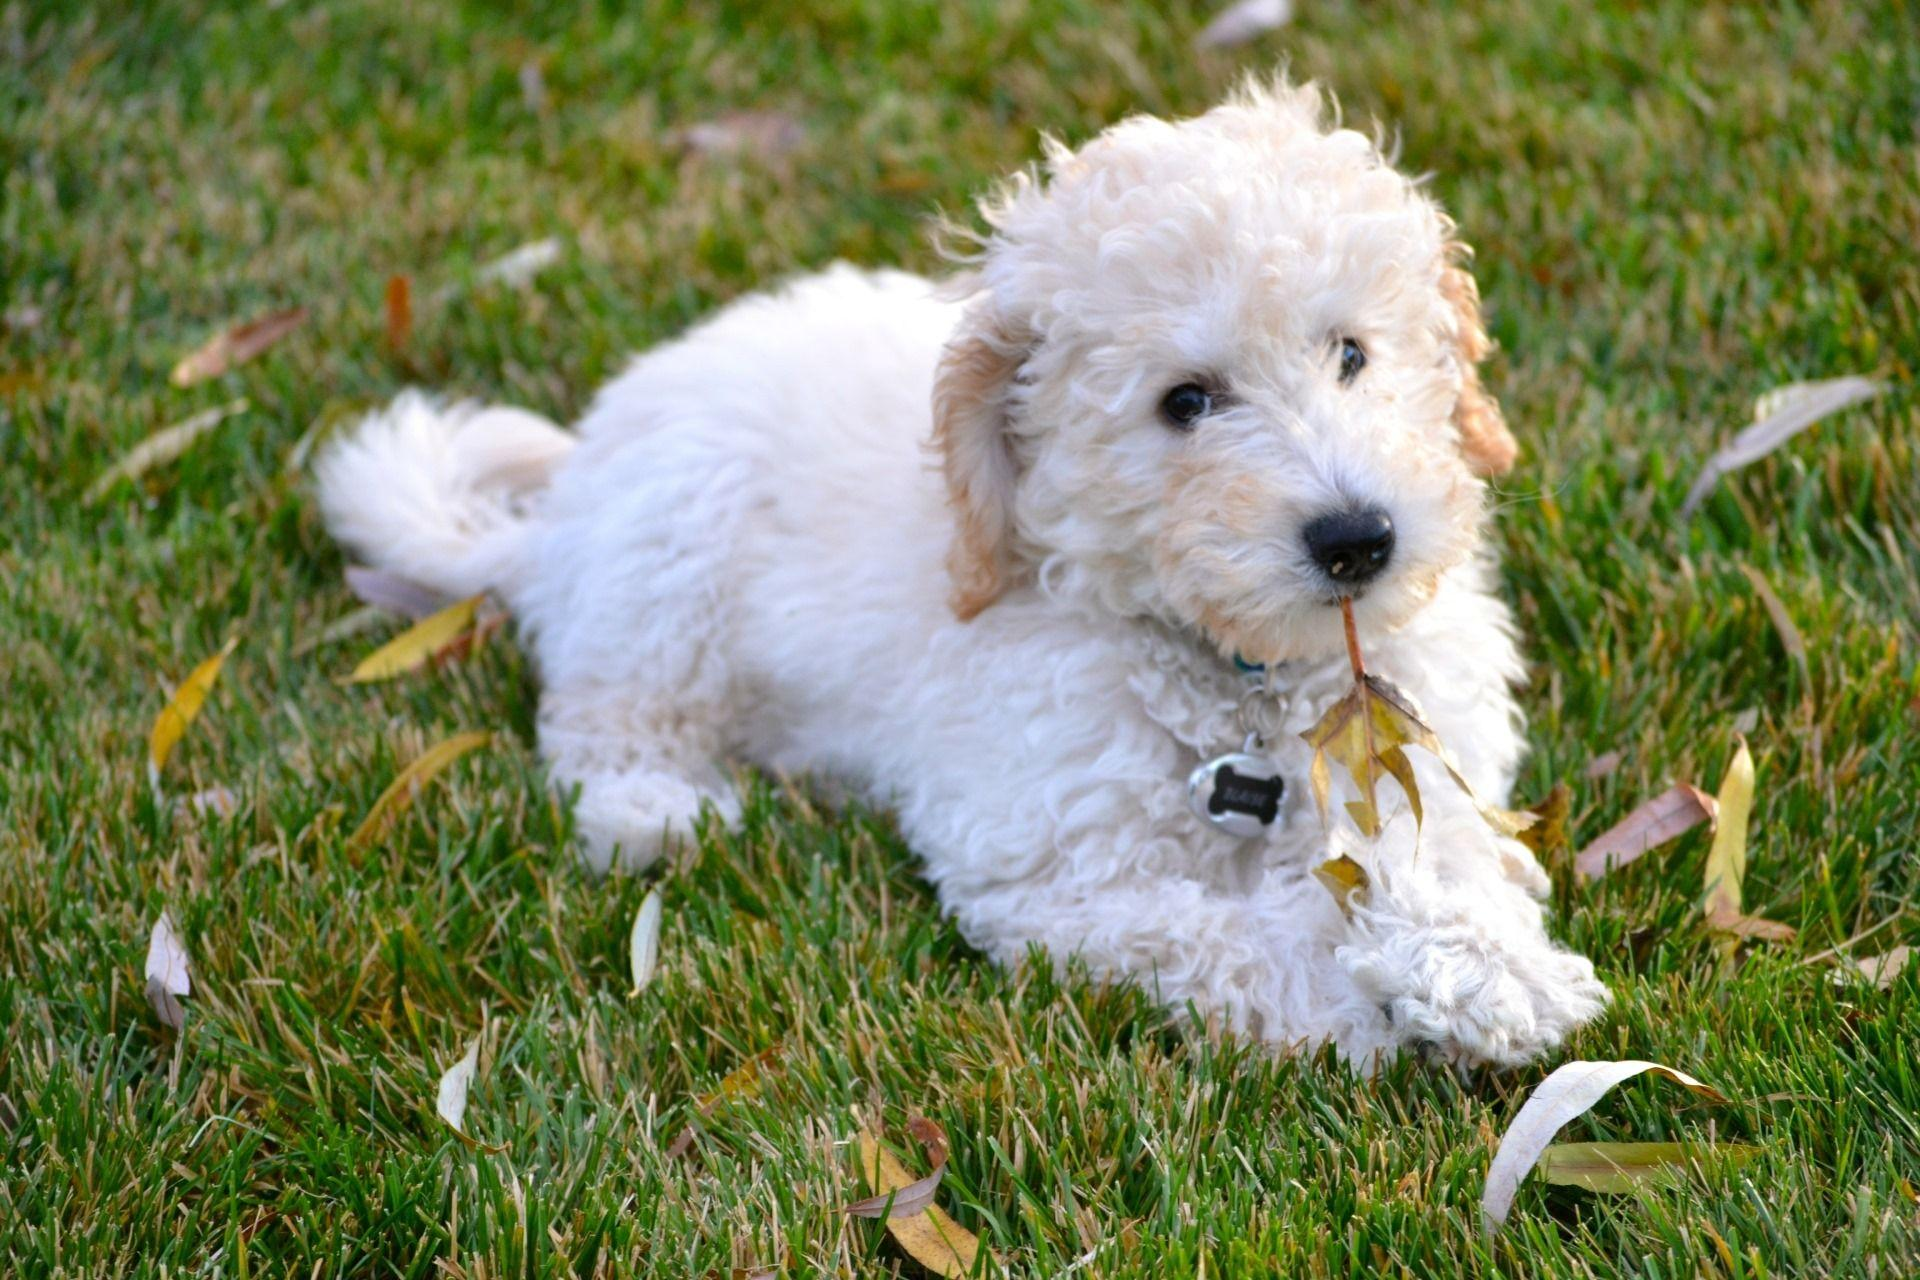 labradoodle labrador retriever and poodle mix - HD 1920×1280